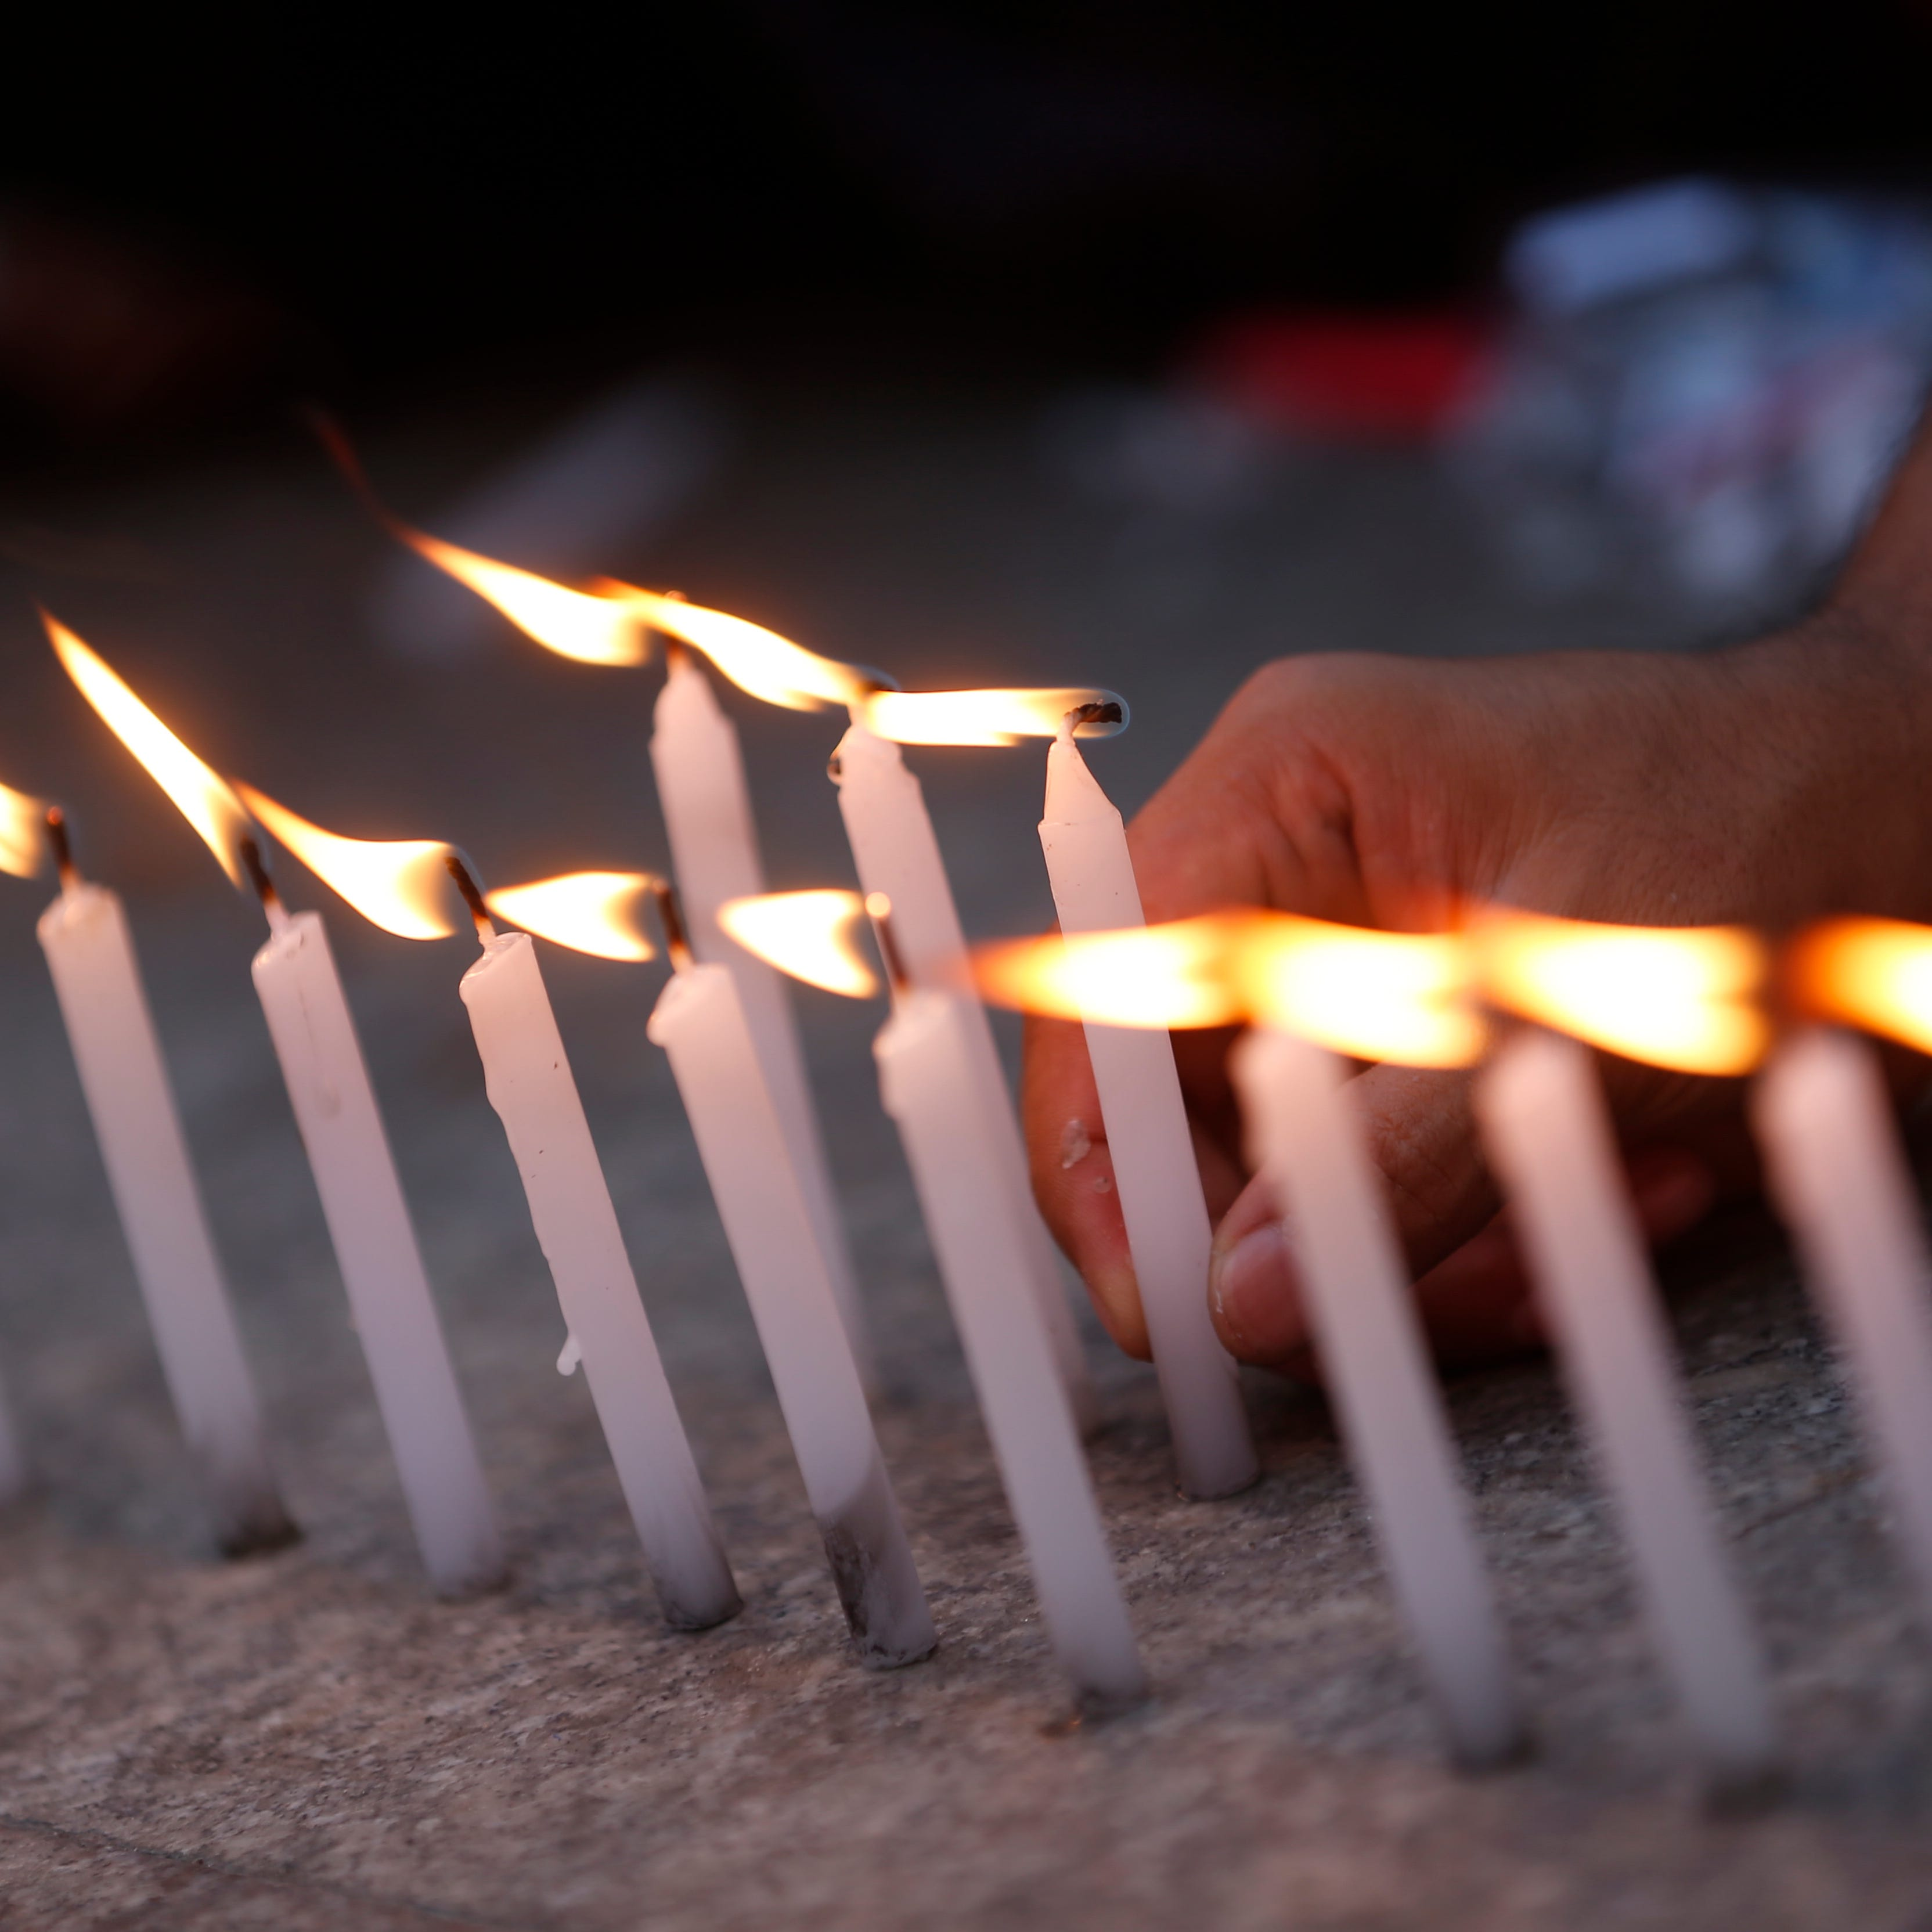 A demonstrator lights candles during a demonstration to mark the one-year anniversary of the arrest and detention of Reuters journalists Wa Lone and Kyaw Soe Oo in Myanmar.